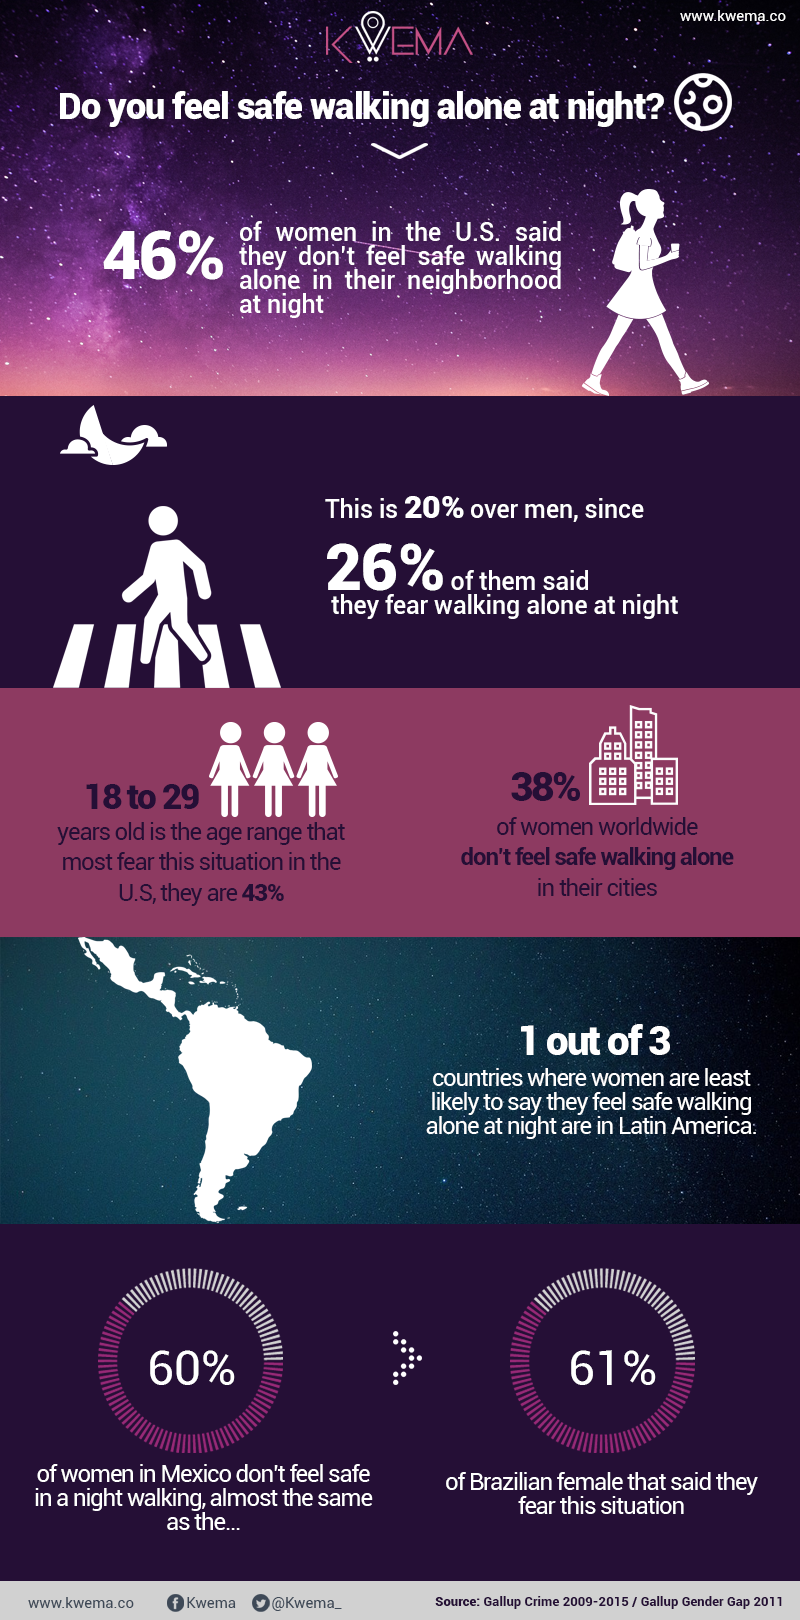 Do You Feel Safe Walking Alone At Night? #infographic